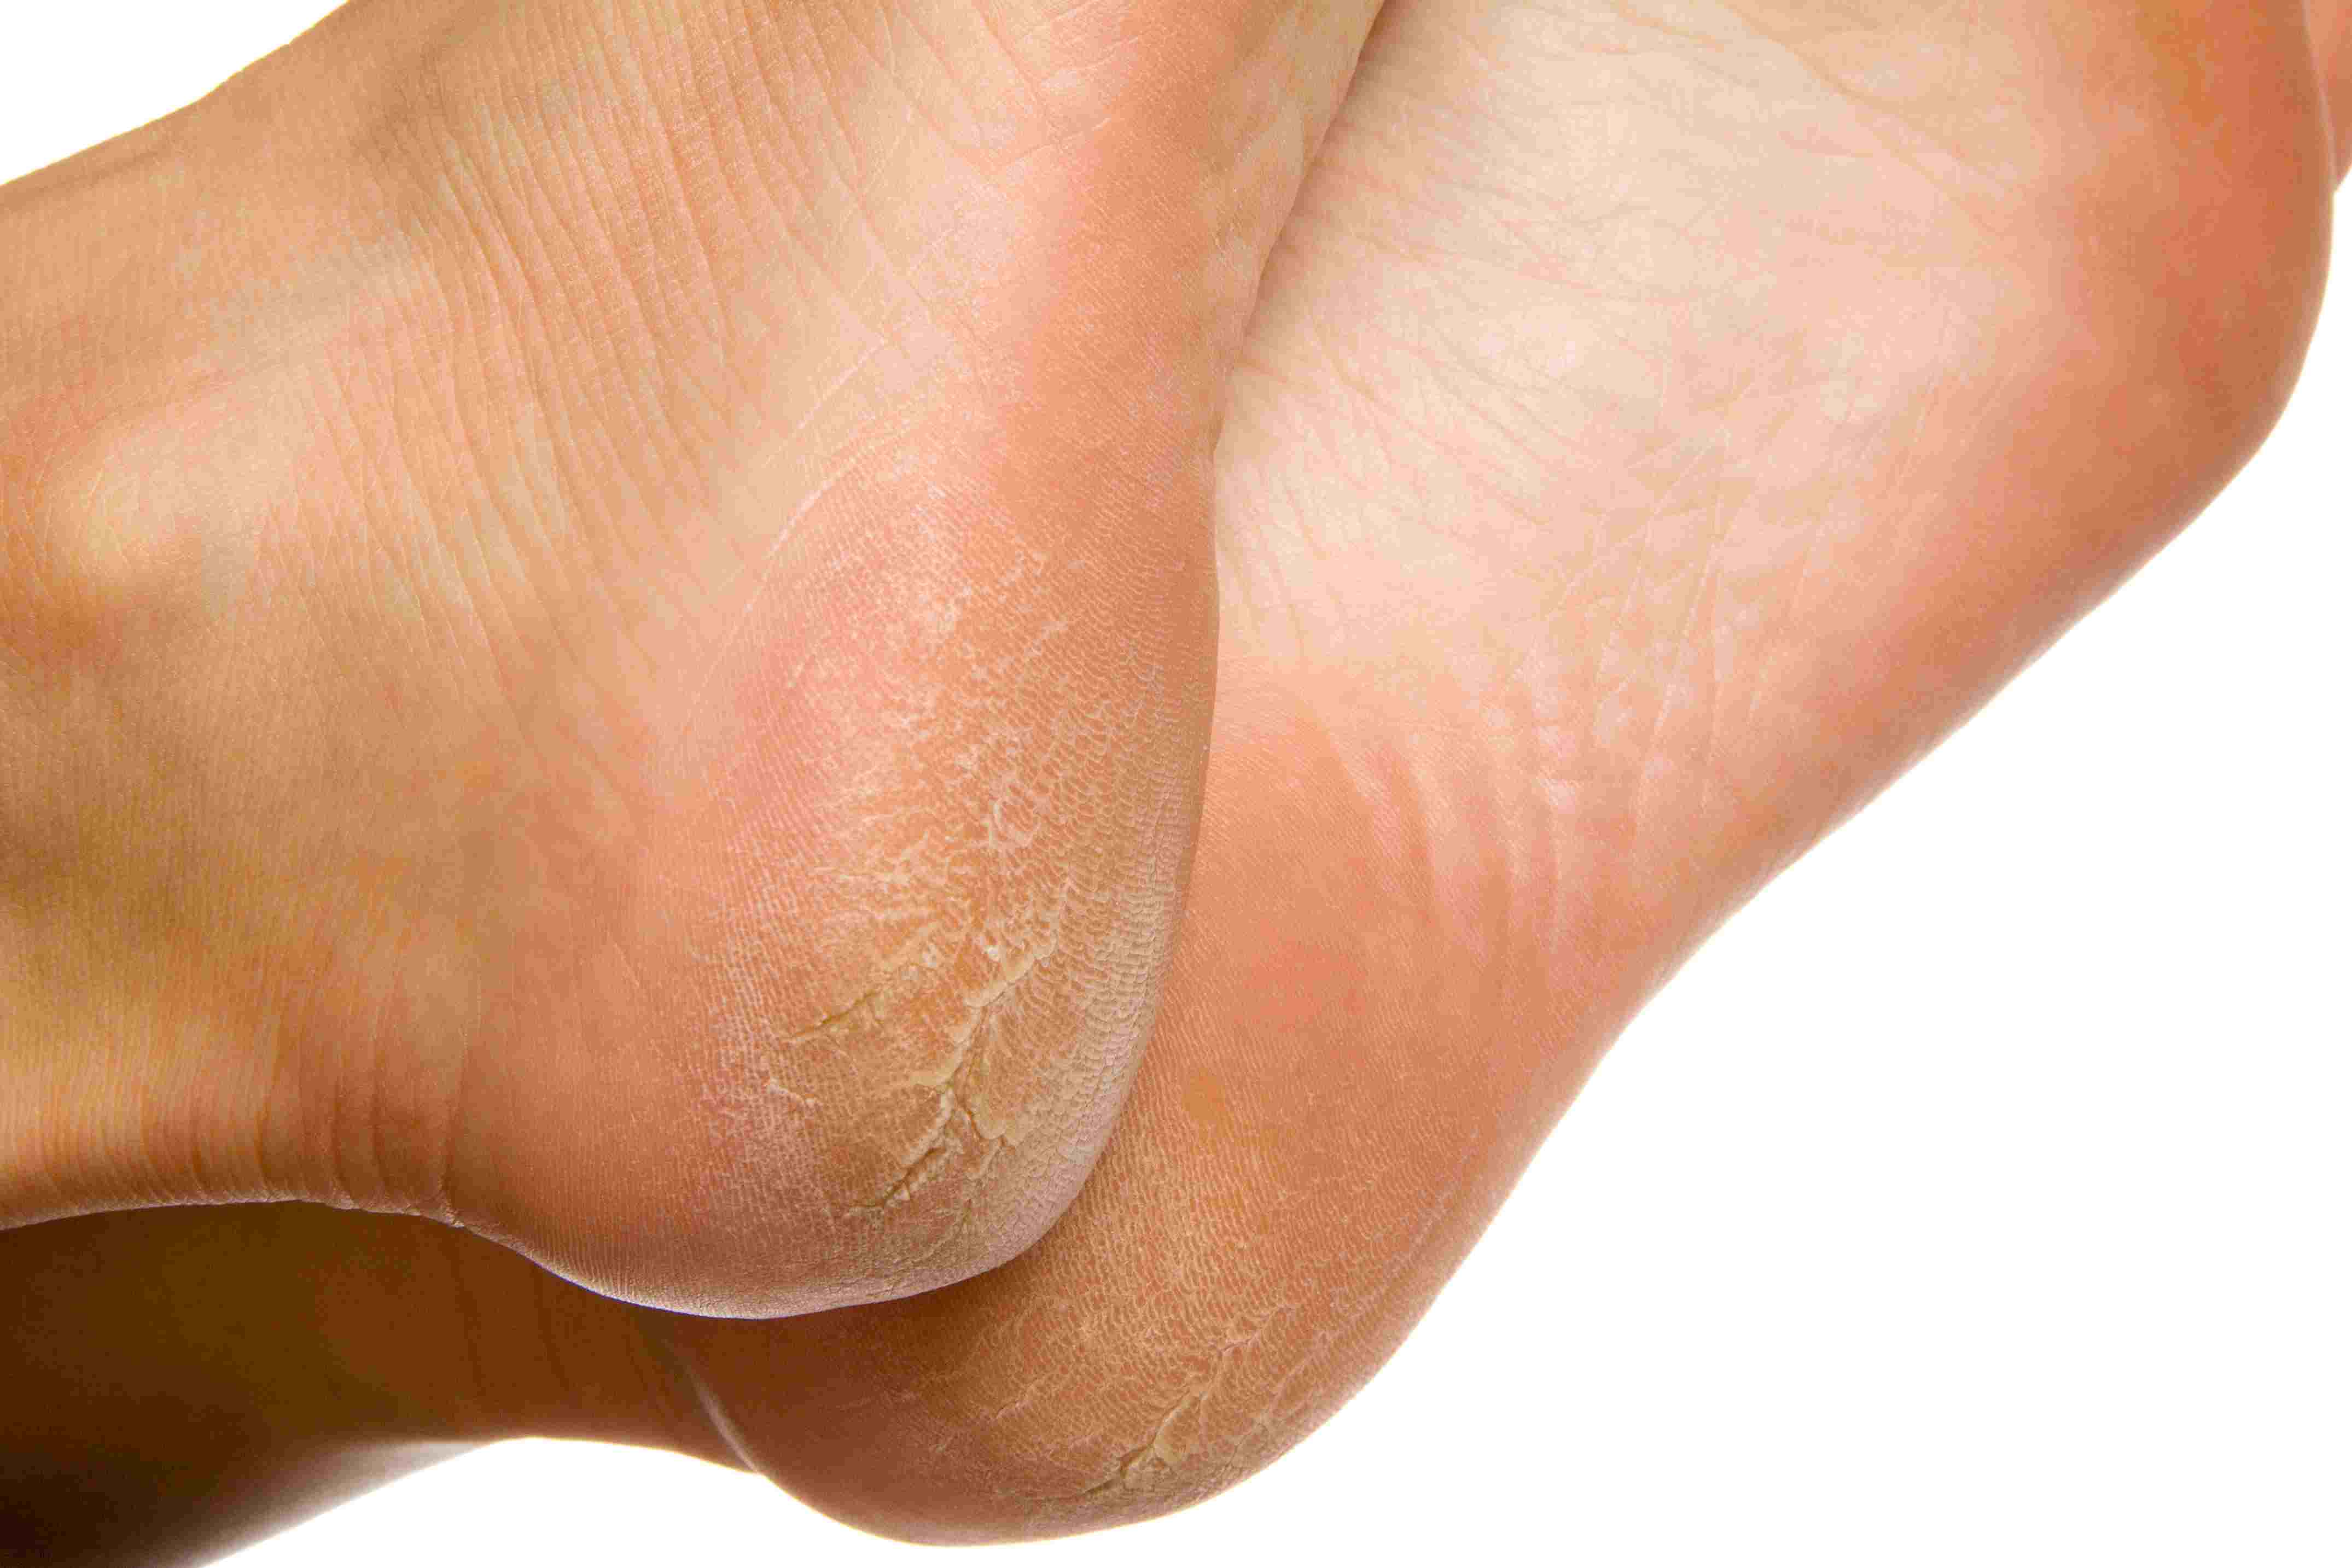 wart foot sole)